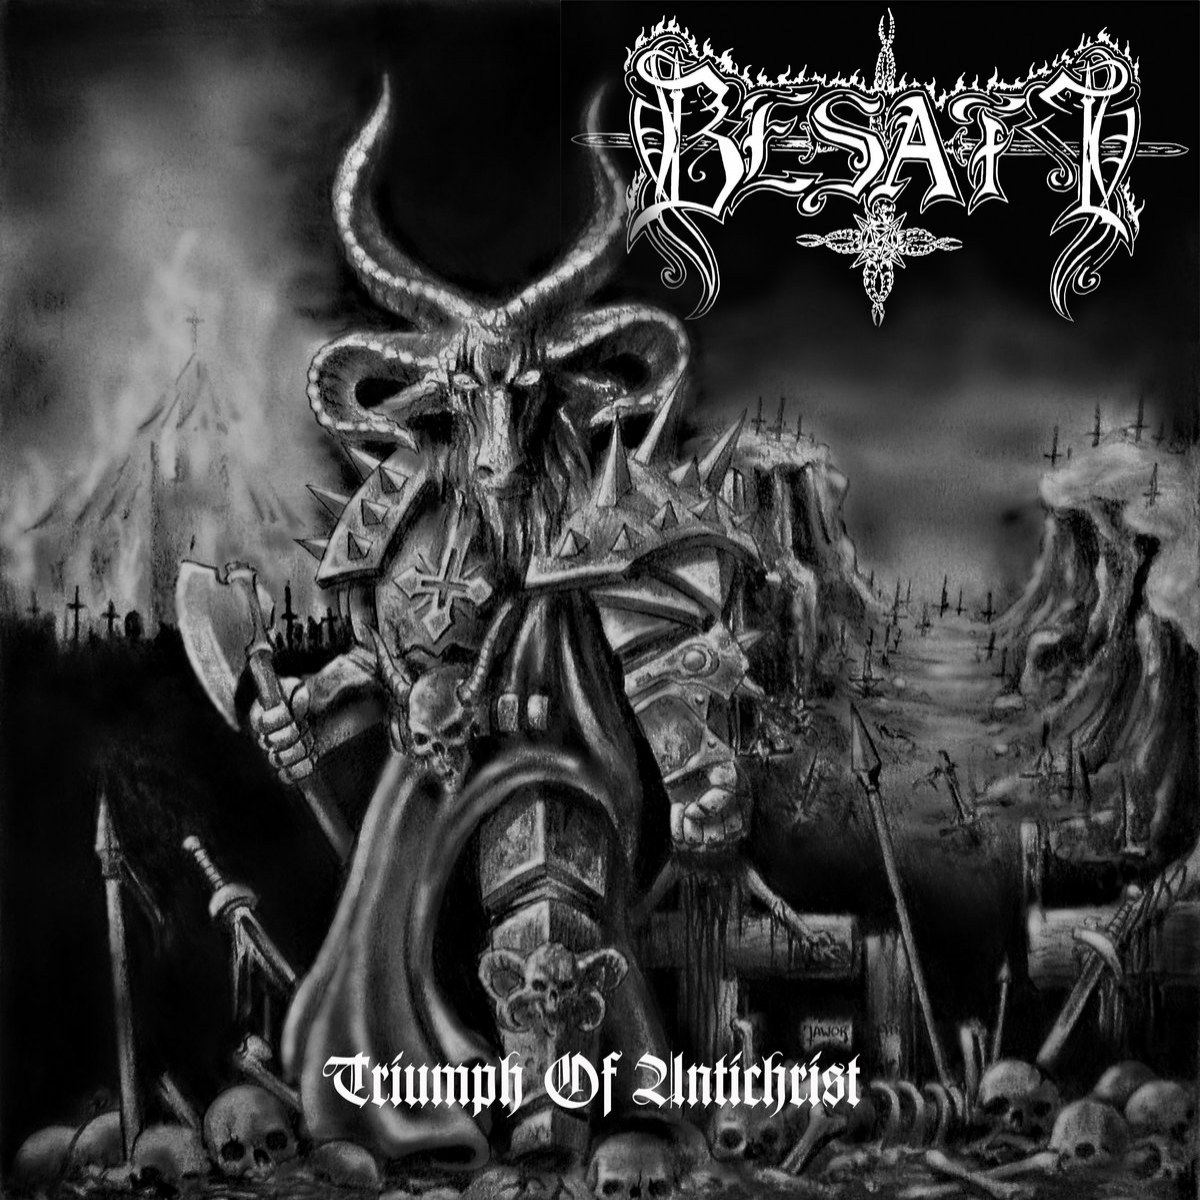 Review for Besatt - Triumph of Antichrist